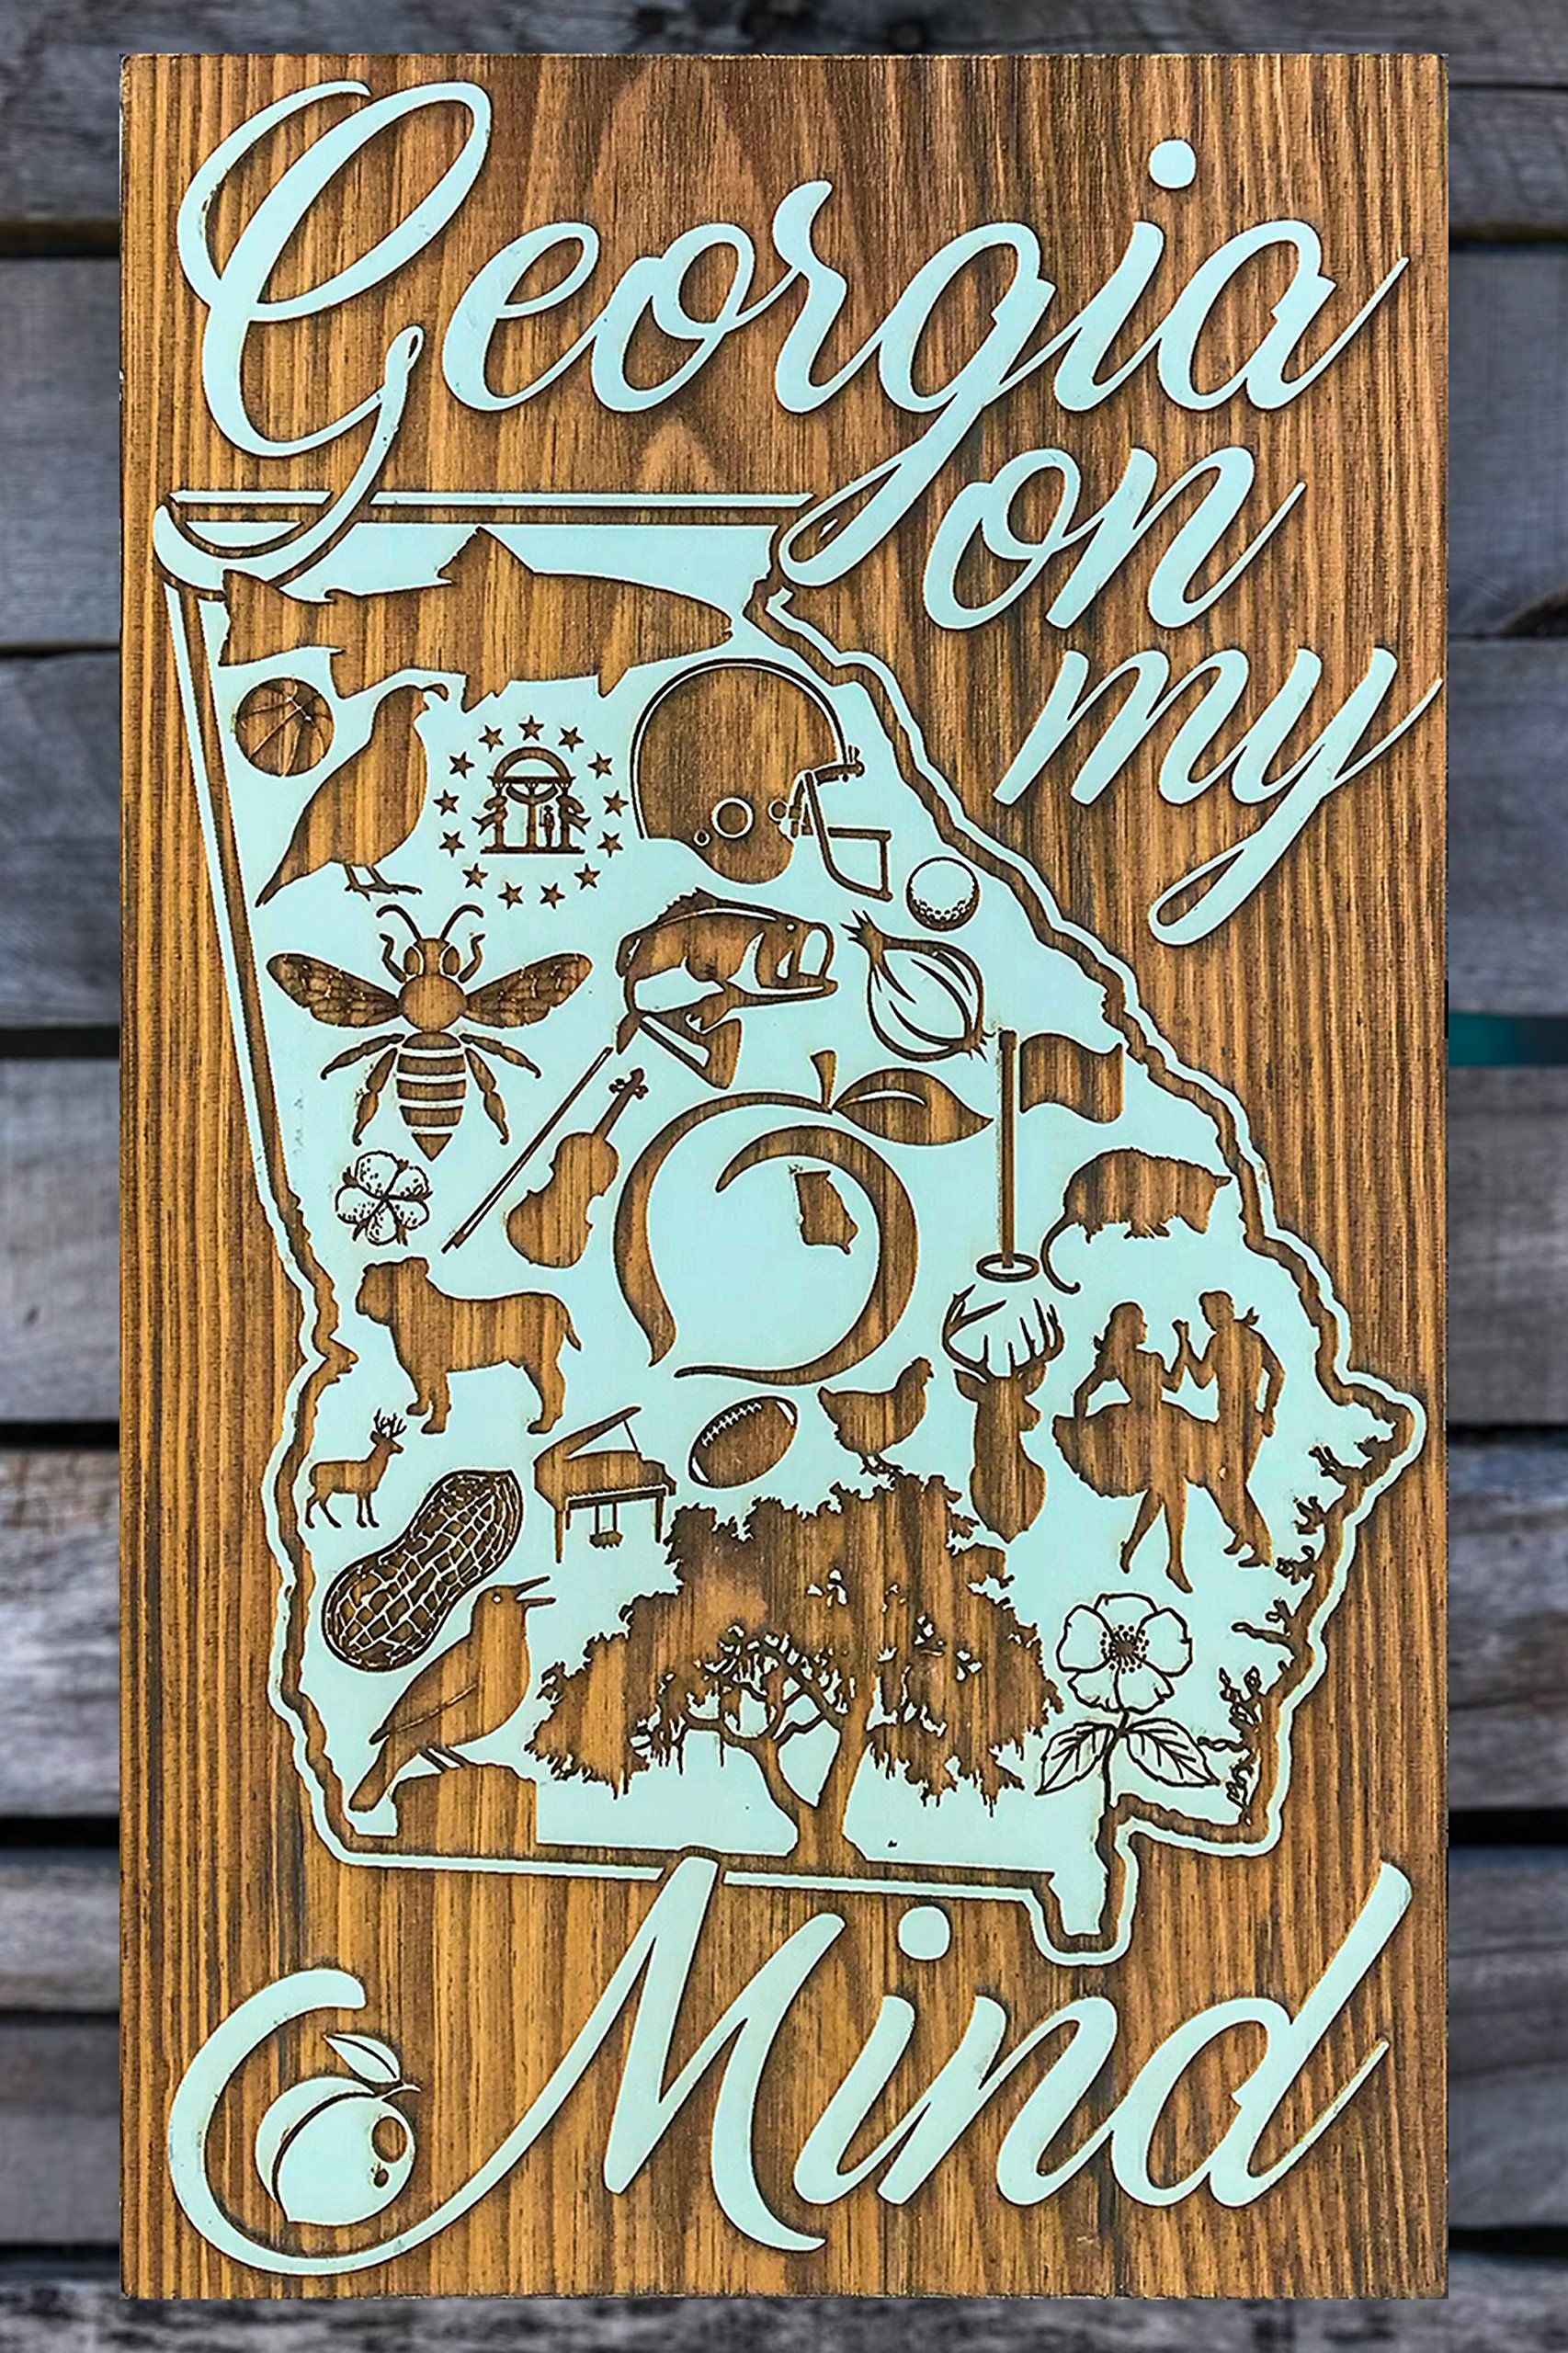 State of Georgia Abstract wood engraved map